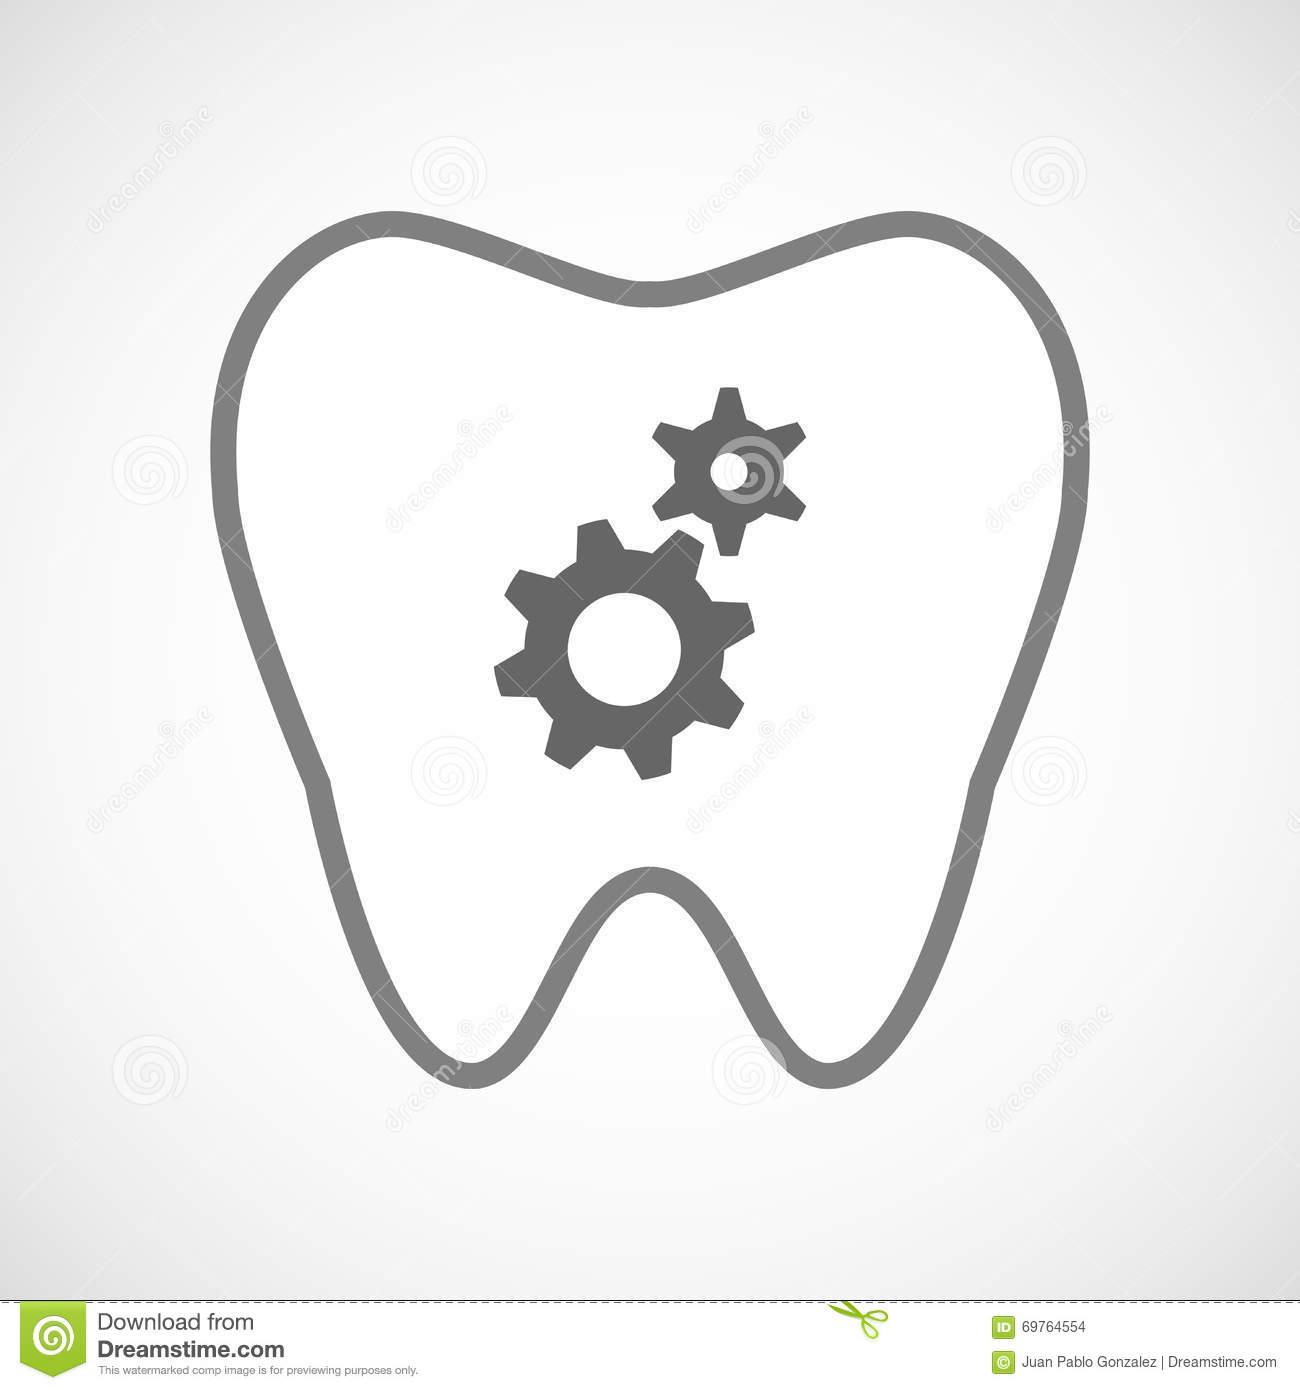 Tooth Line Drawing Tumblr : Line art tooth icon with two gears stock illustration